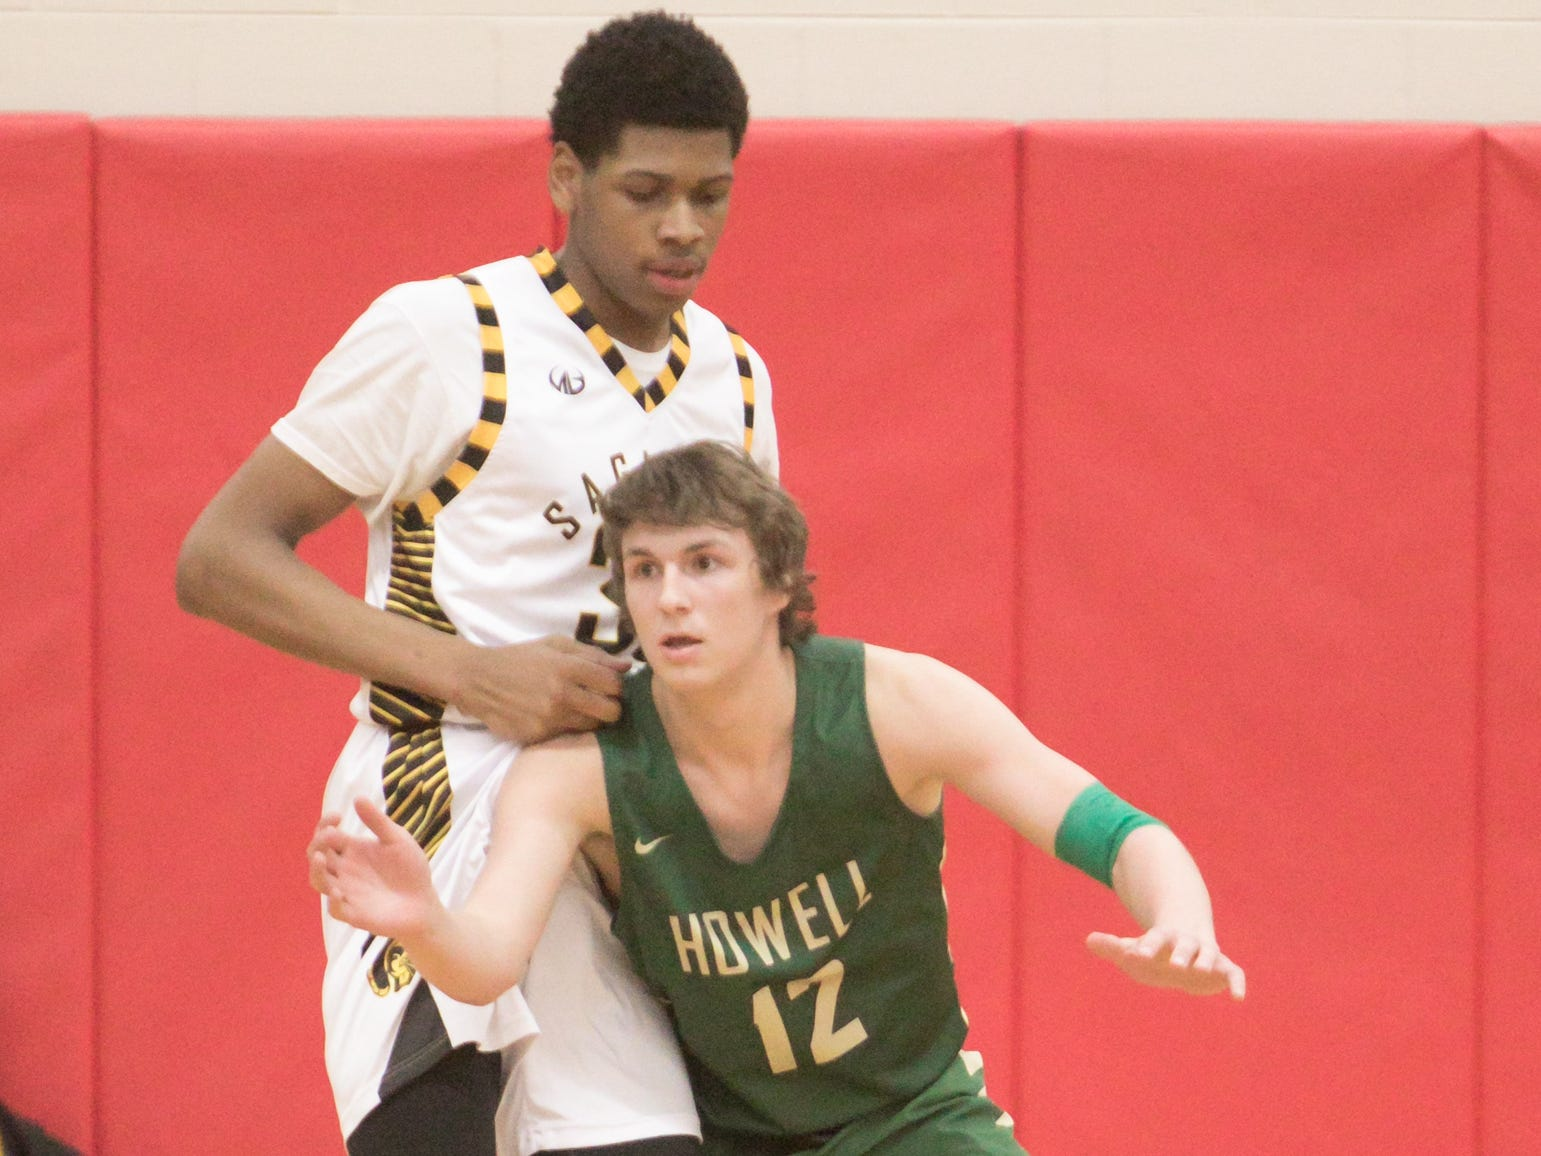 While Howell's Tony Honkala was dwarfed by Saginaw's James Baber, the Highlanders were not dominated in the quarterfinal game Tuesday, March 12, 2019, coming out on top.